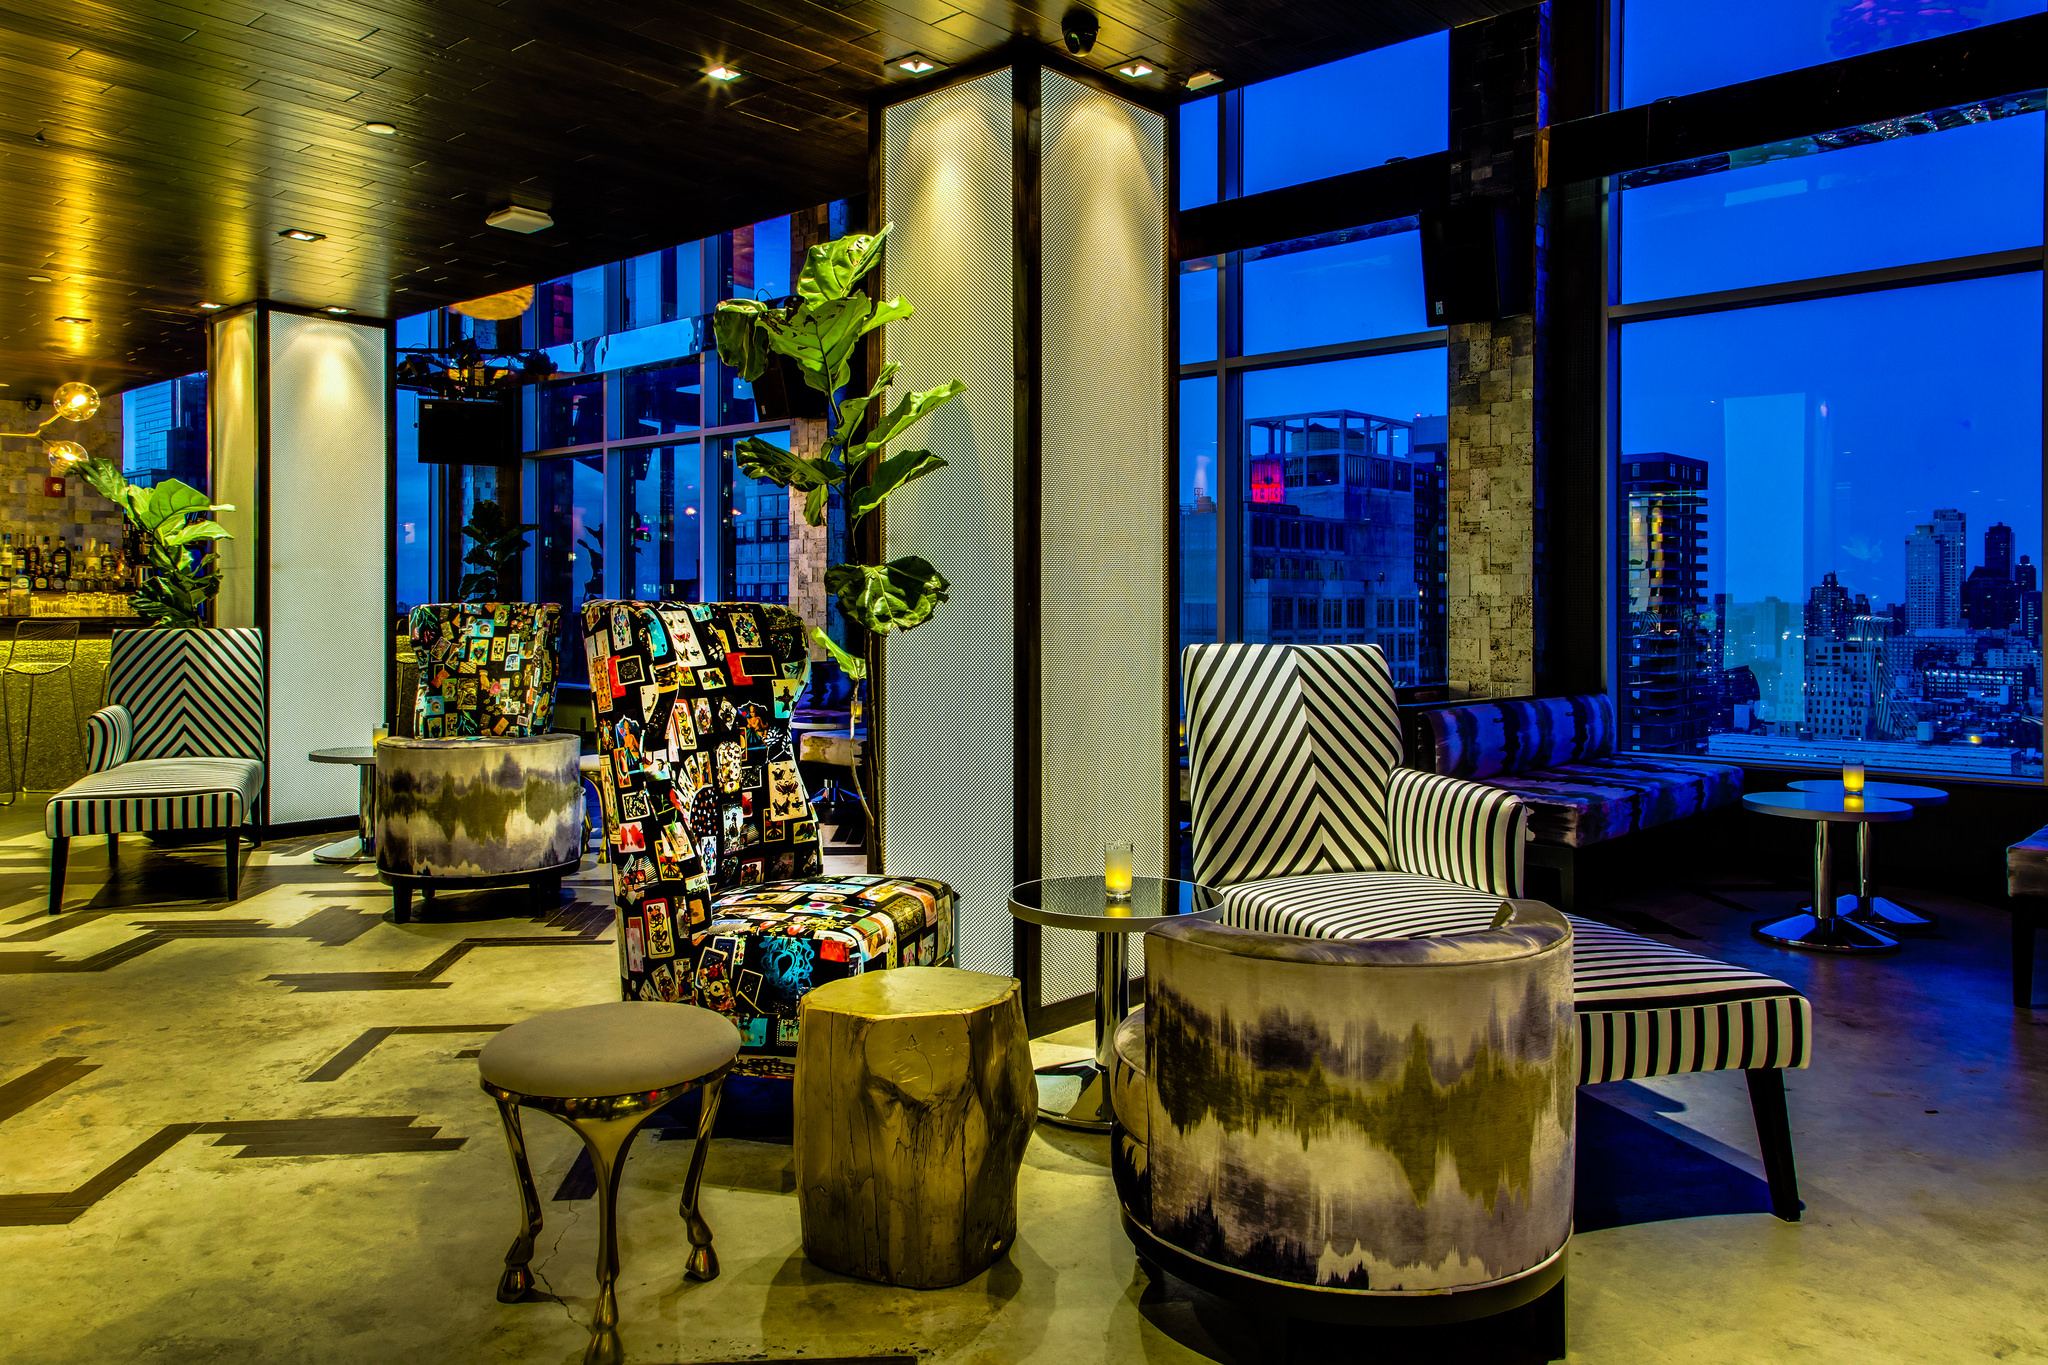 Full Venue Buyout event space at Lovage in New York City, NYC, NY/NJ Area